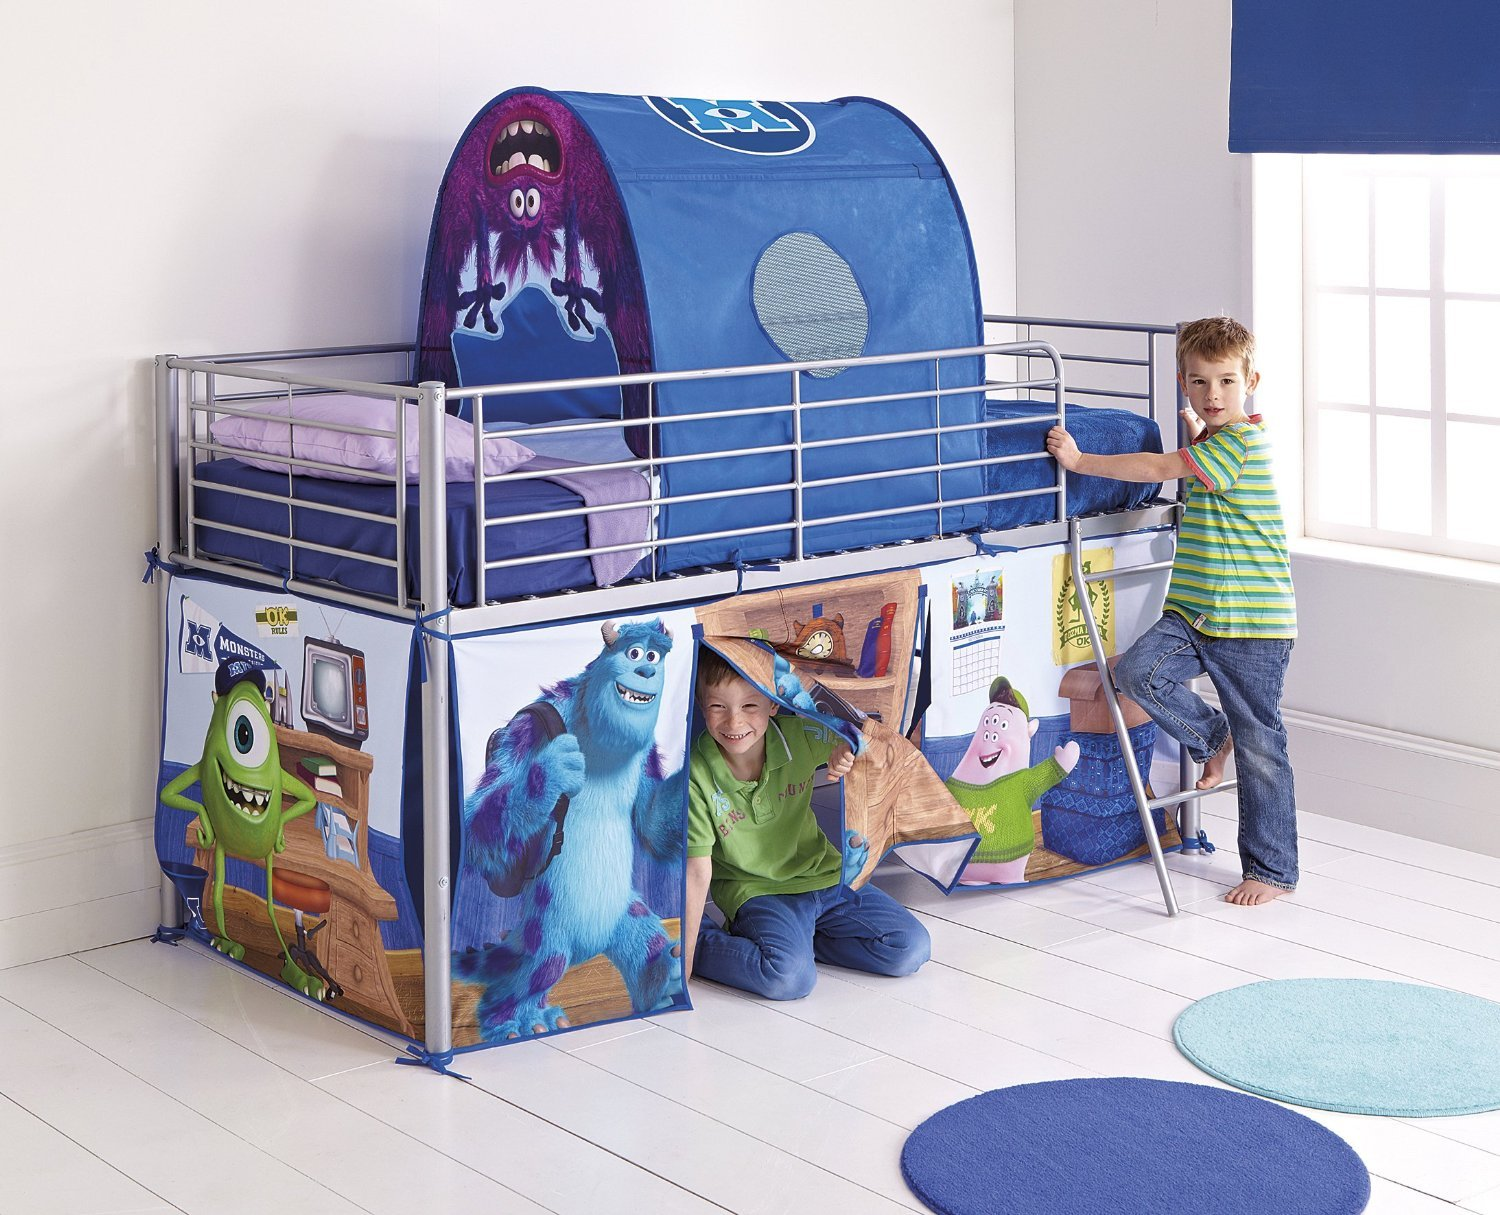 Disney Monsters University Mid Sleeper Bed Tent Pack Multi-Color Amazon.co.uk Kitchen u0026 Home & Disney Monsters University Mid Sleeper Bed Tent Pack Multi-Color ...